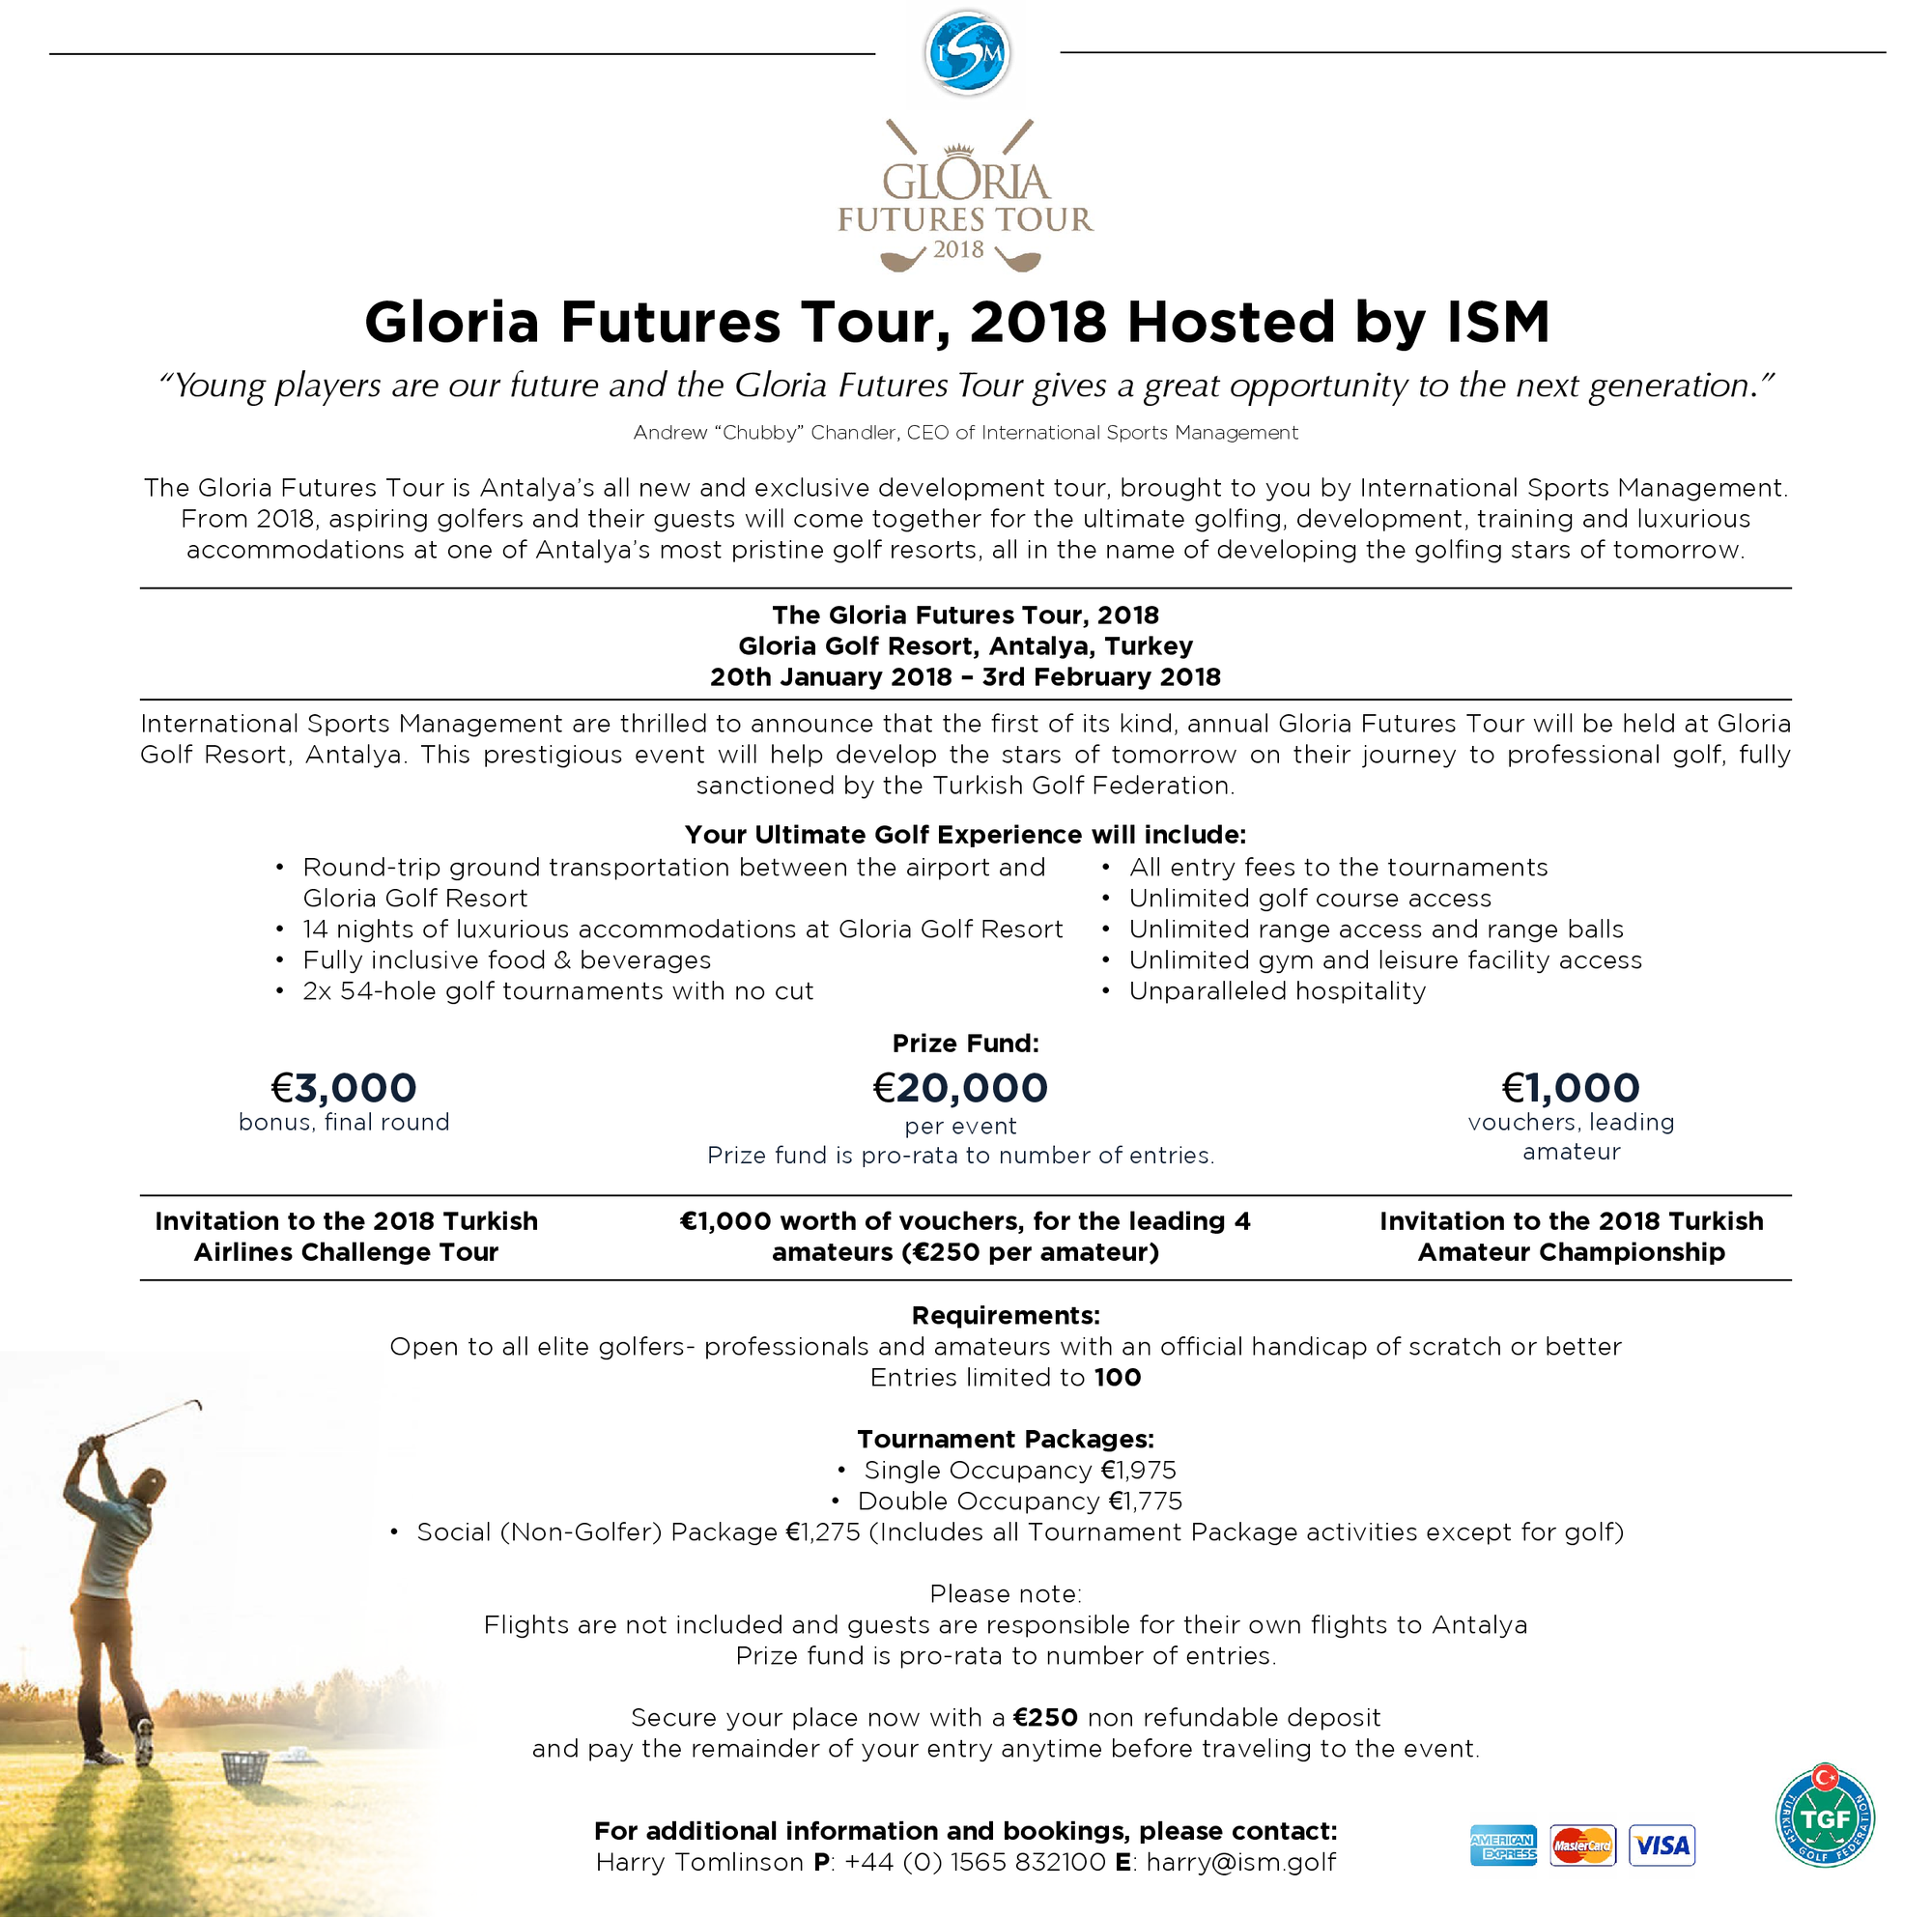 Ism   gloria futures tour  1  1